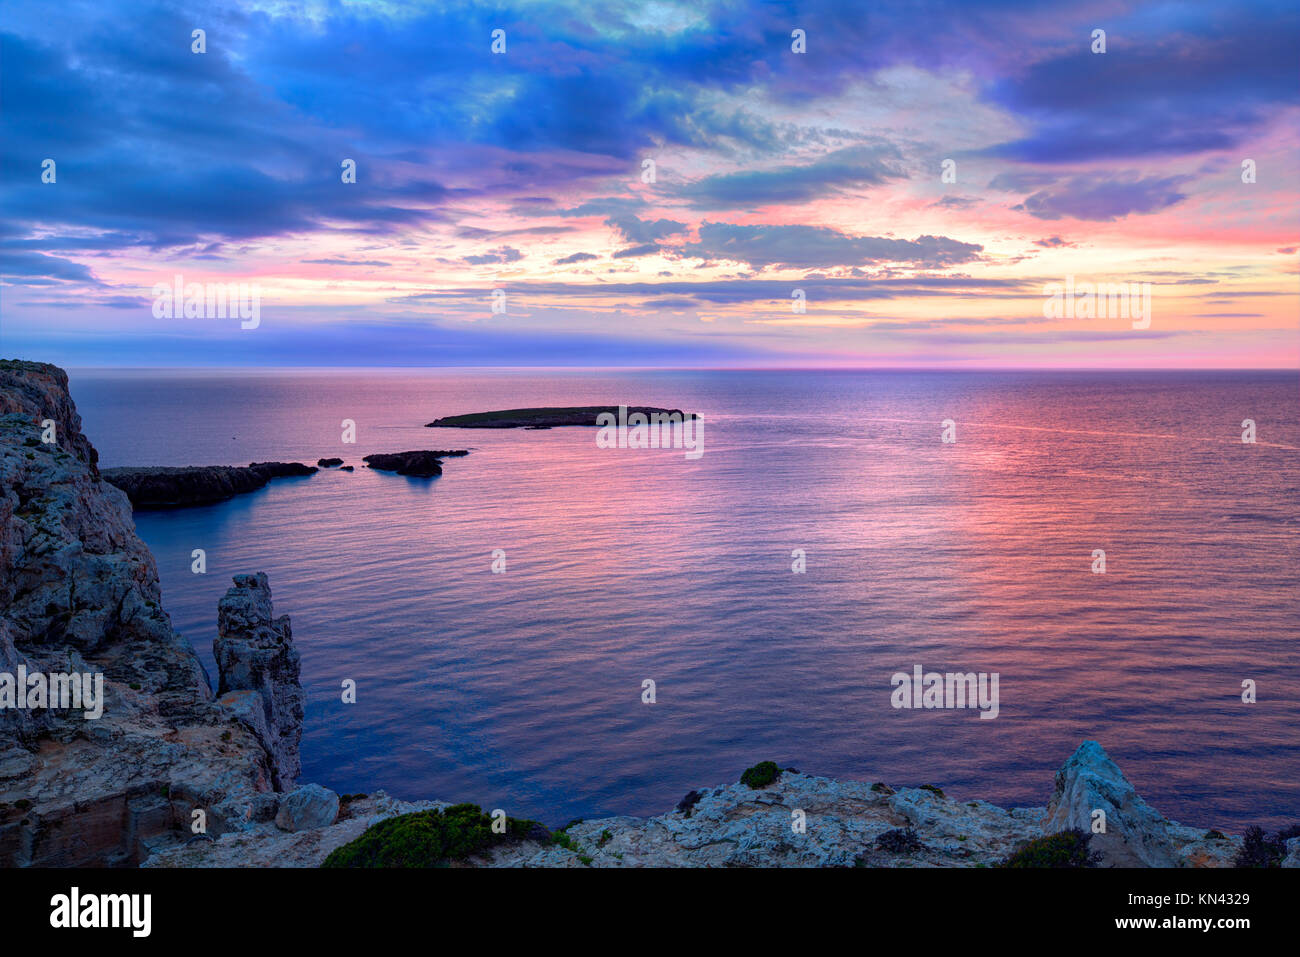 Menorca sunset in Cap de Caballeria cape at Balearic Islands es Mercadal. - Stock Image